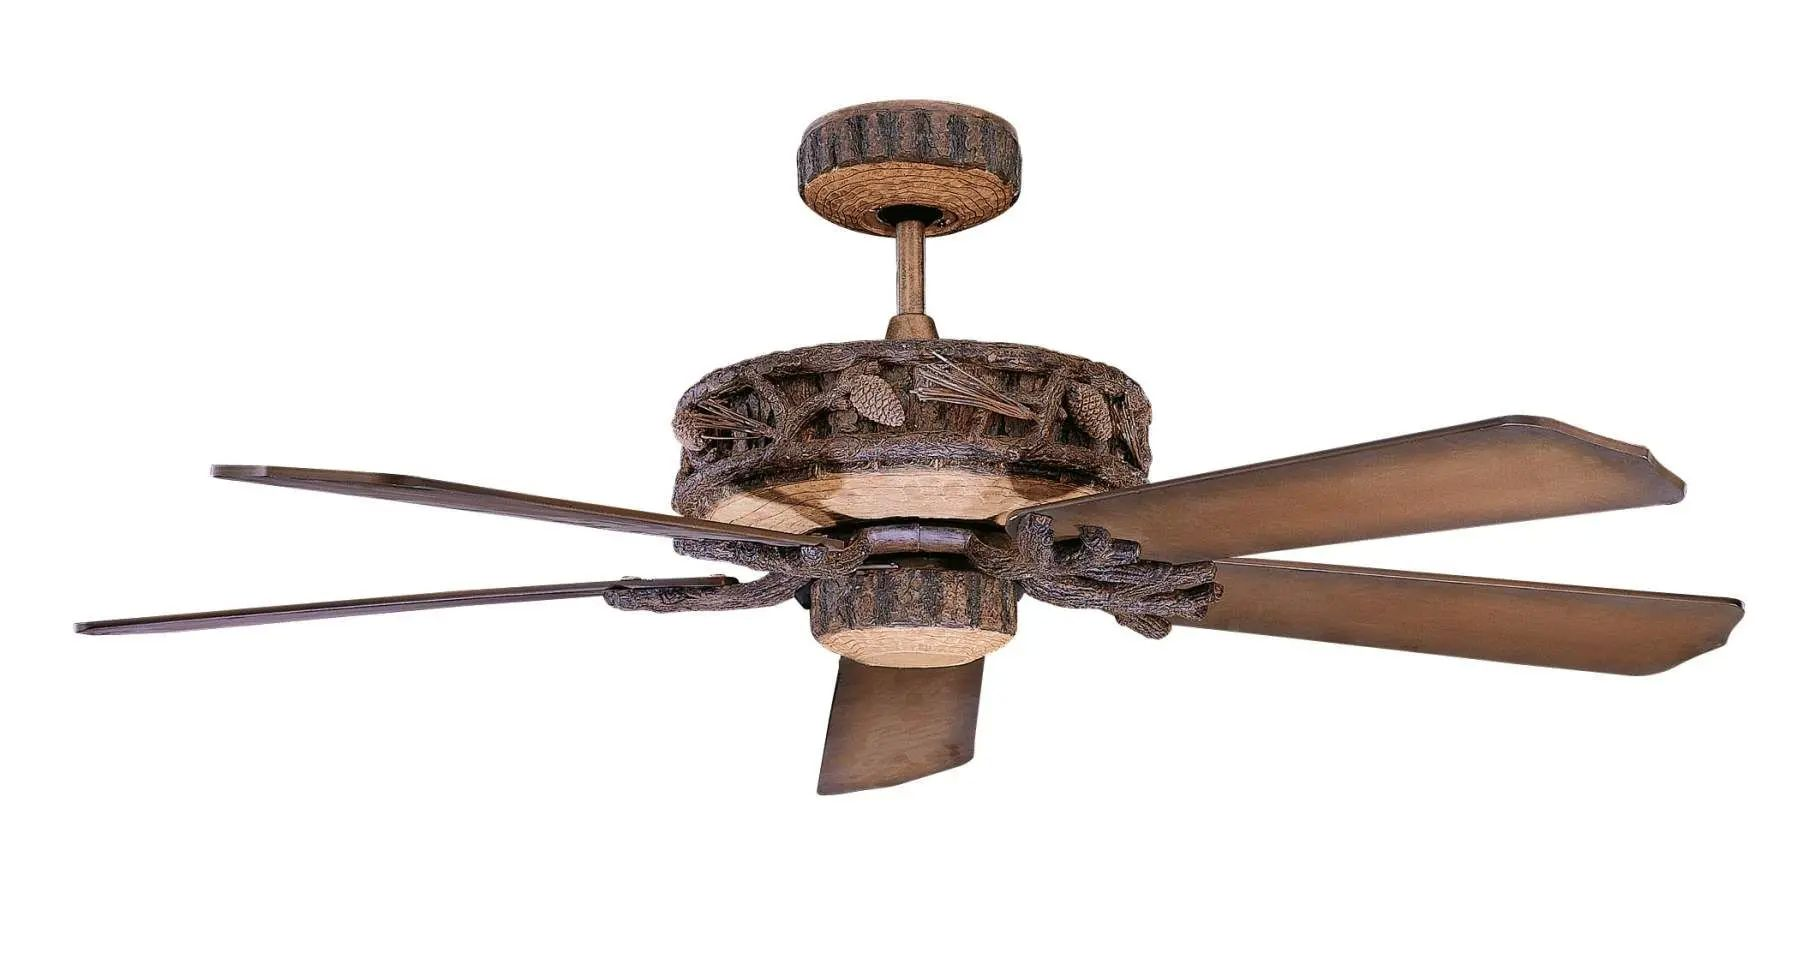 Concord Ponderosa Outdoor Ceiling Fan in Old World Leather